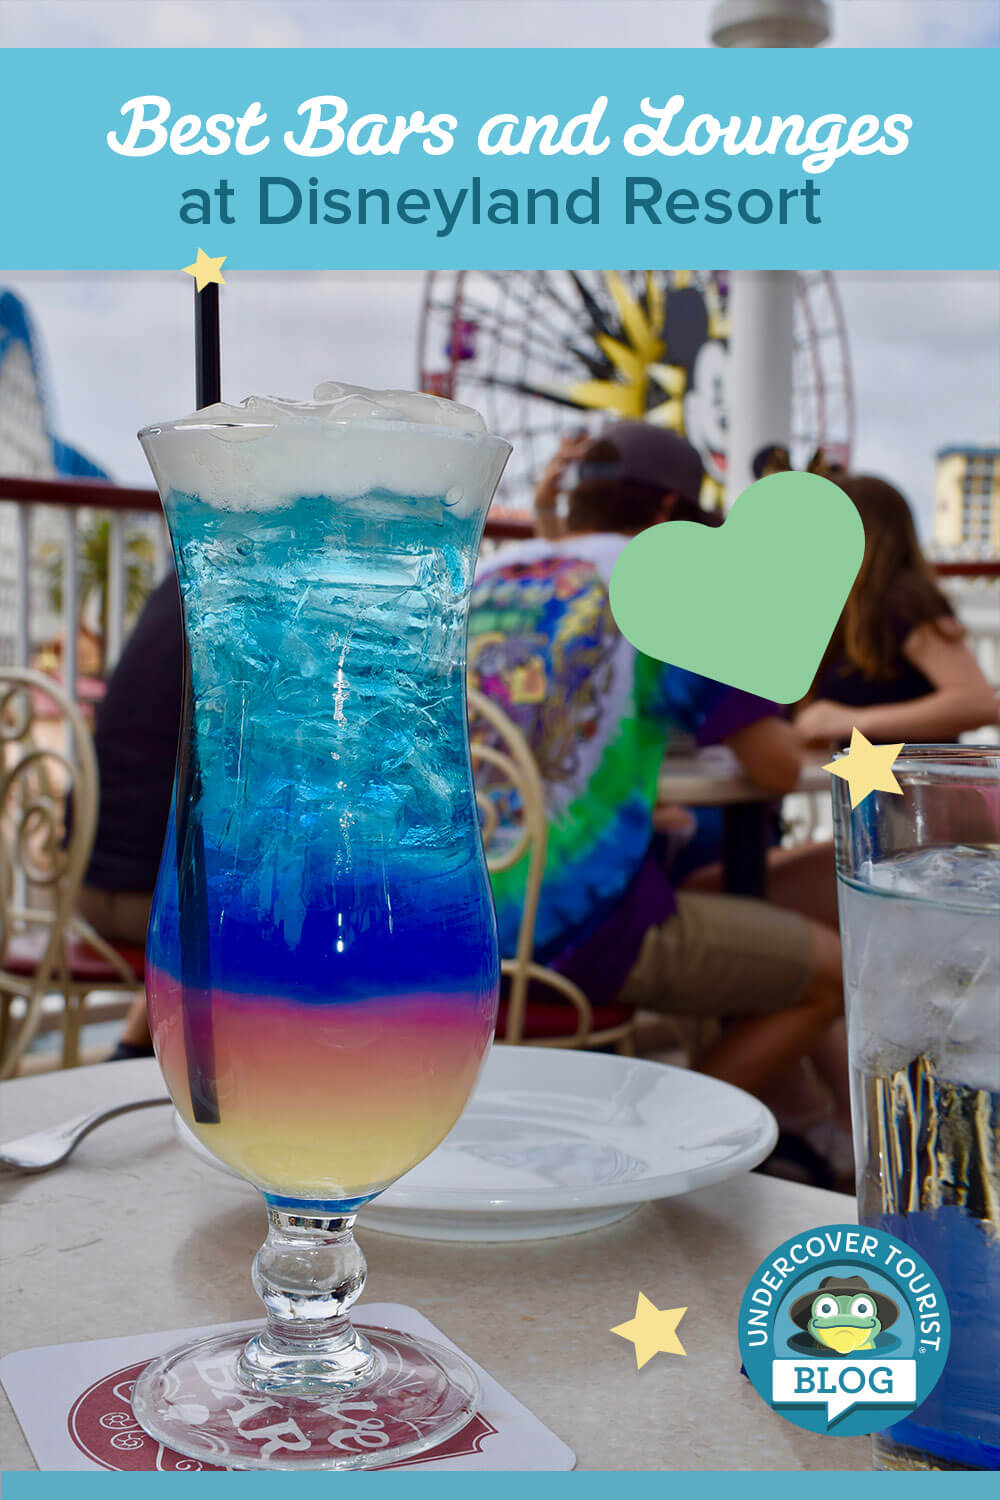 Best Bars and Lounges at Disneyland - Pinterest